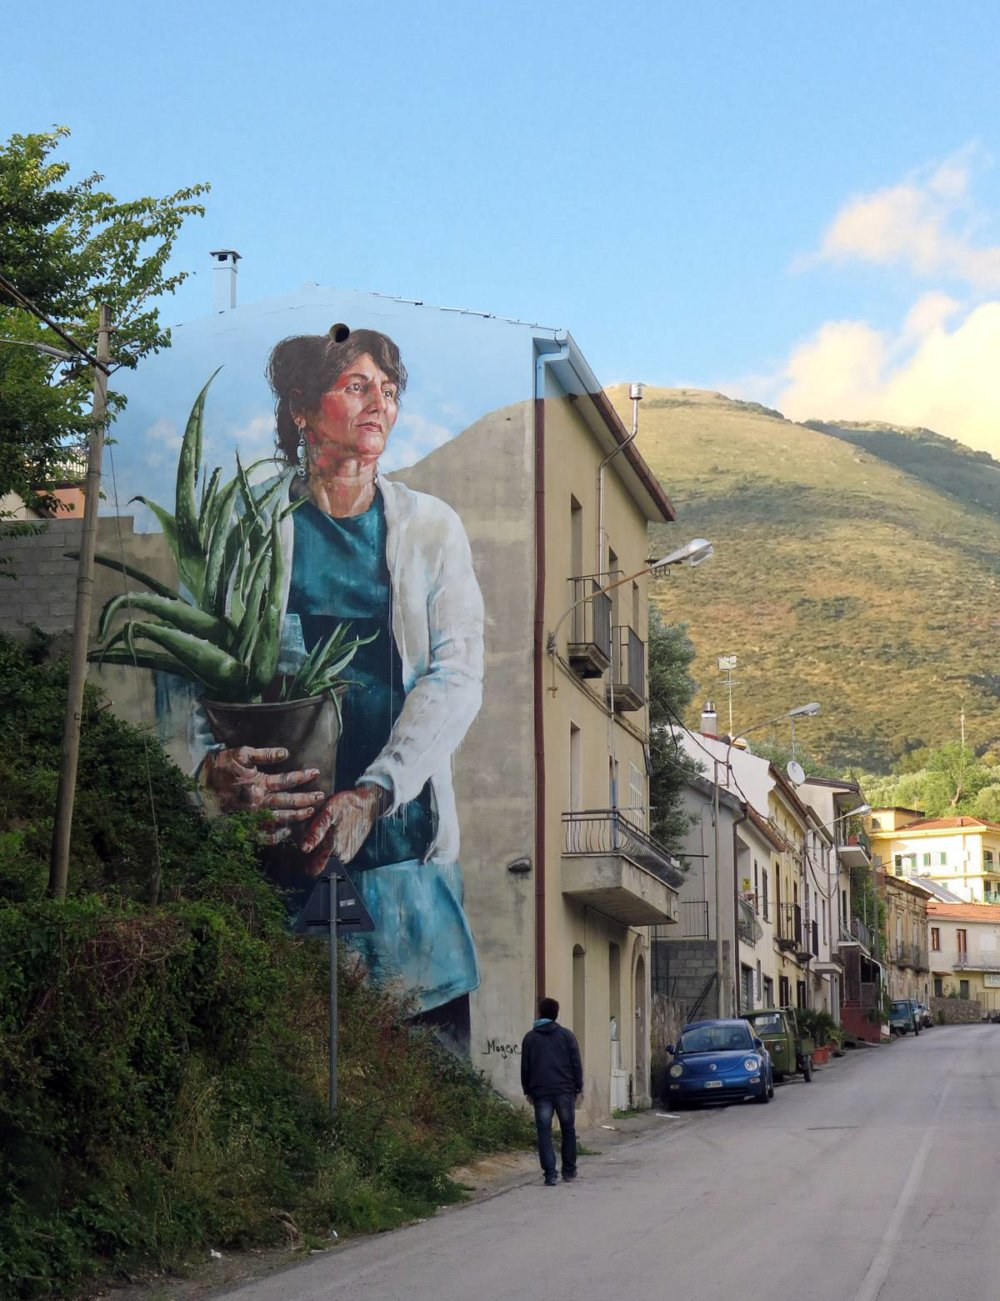 Magnificent Giant Photo Realistic Murals That Portray Political And Social Issues By Fintan Magee 1